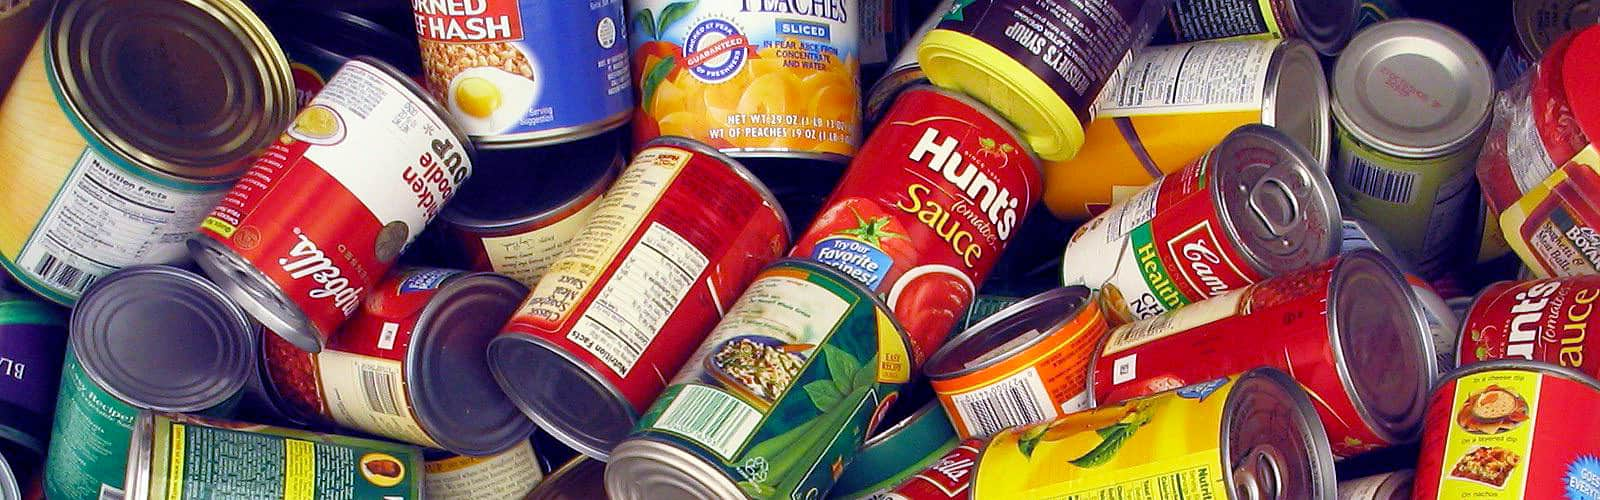 Food drive in Chicago suburbs